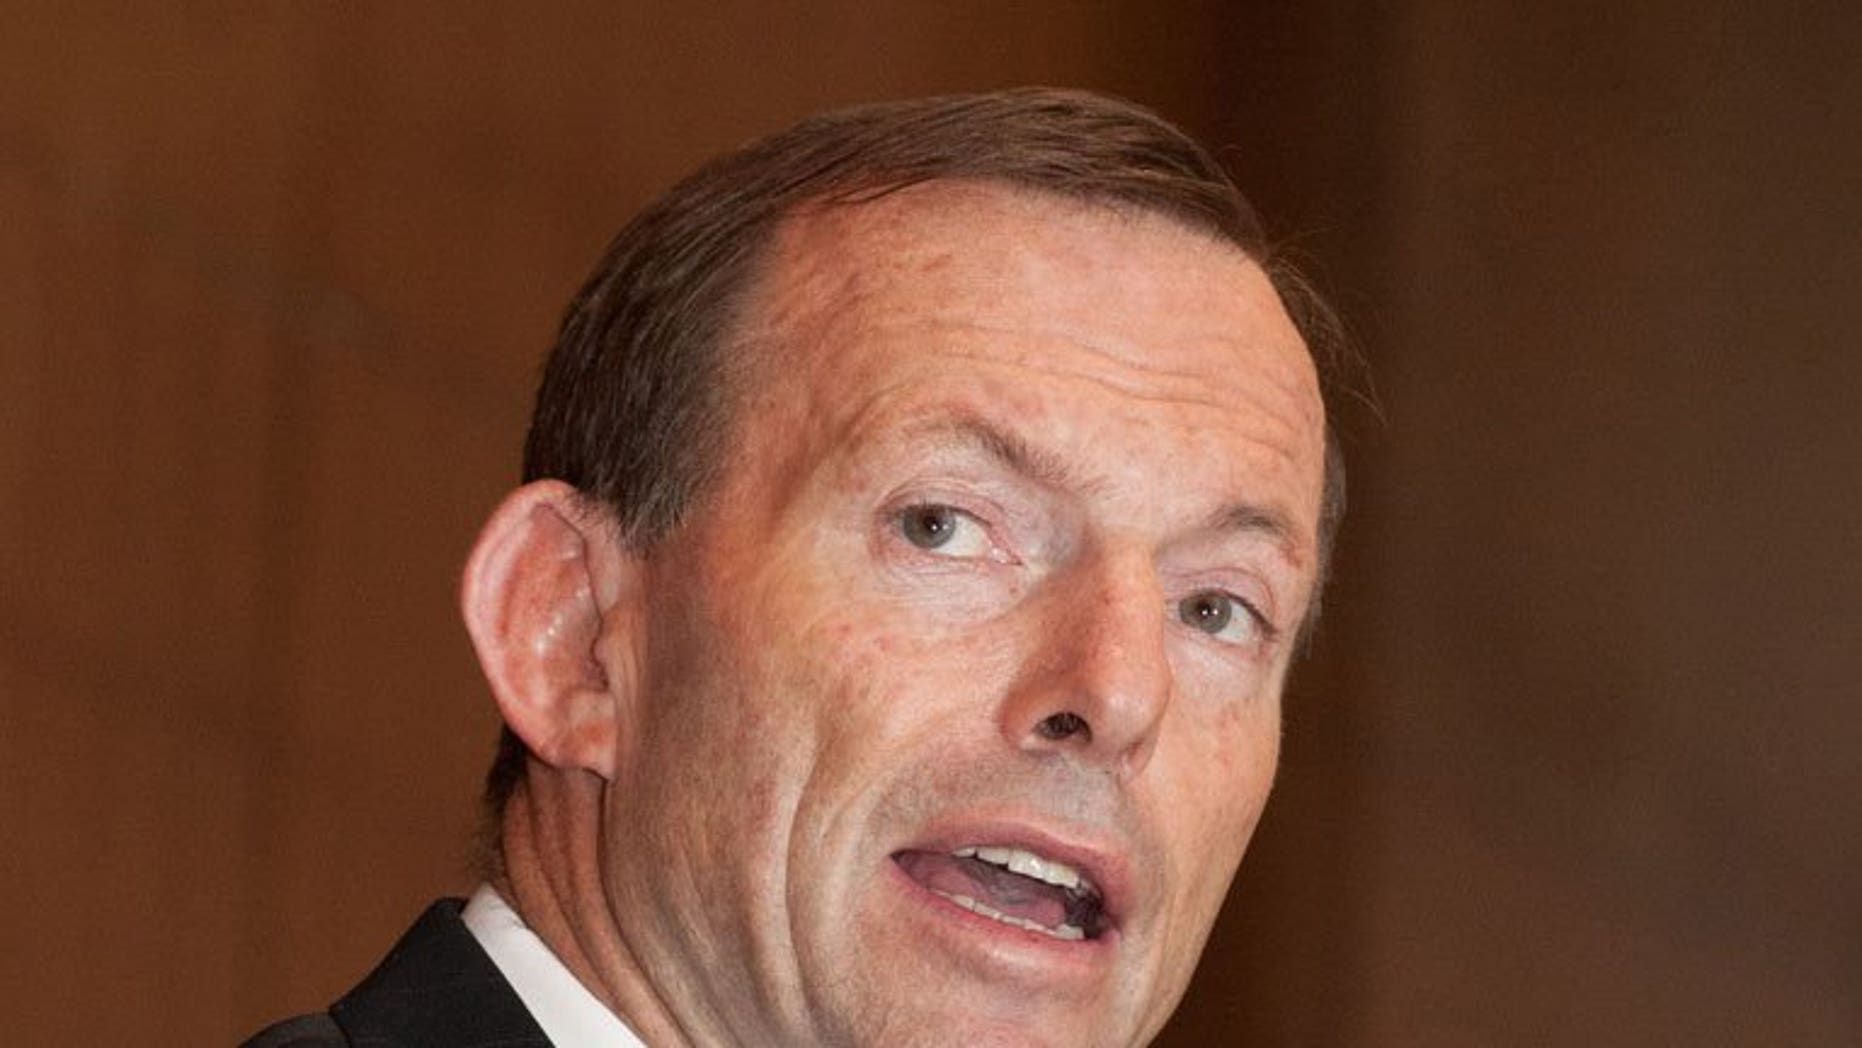 """Australian opposition leader Tony Abbott delivers a speech in Beijing, on July 24, 2012. Abbott -- accused last year of misogyny in a blistering speech by then-prime minister Julia Gillard -- is under fire after touting the """"sex appeal"""" of an election candidate."""